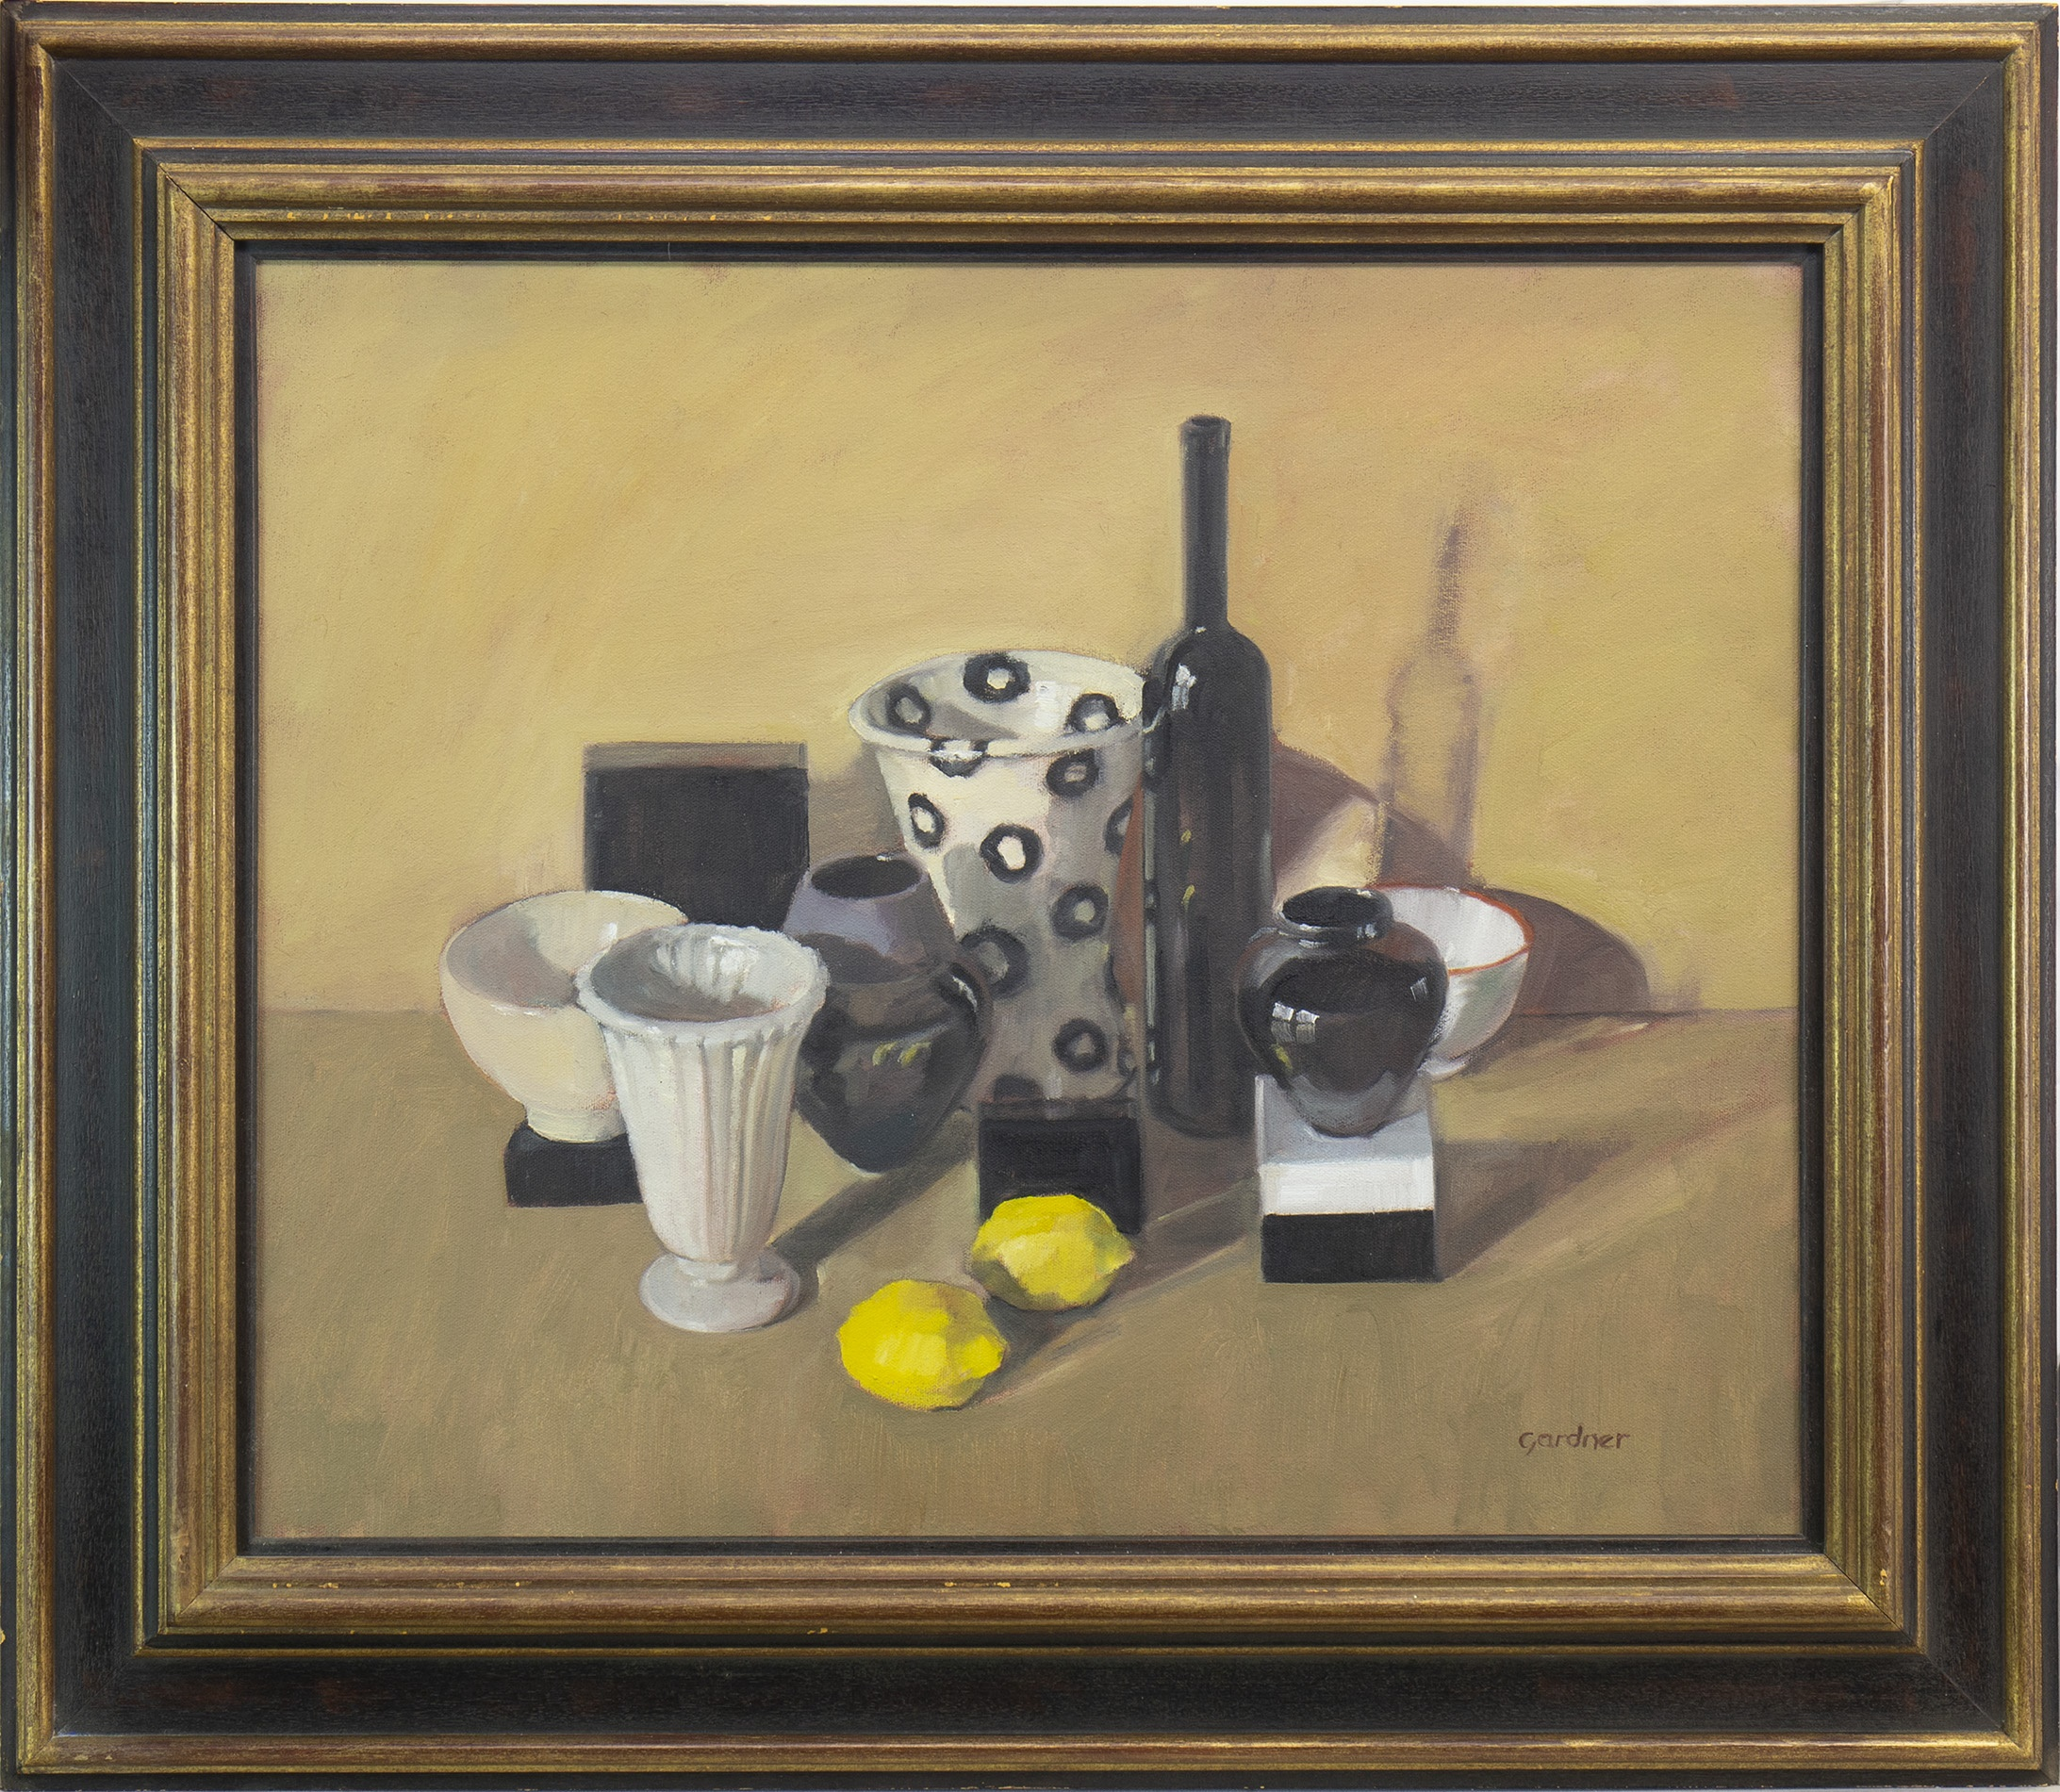 CLAUSTROPHOBIC STILL LIFE, AN OIL BY SANDIE GARDNER